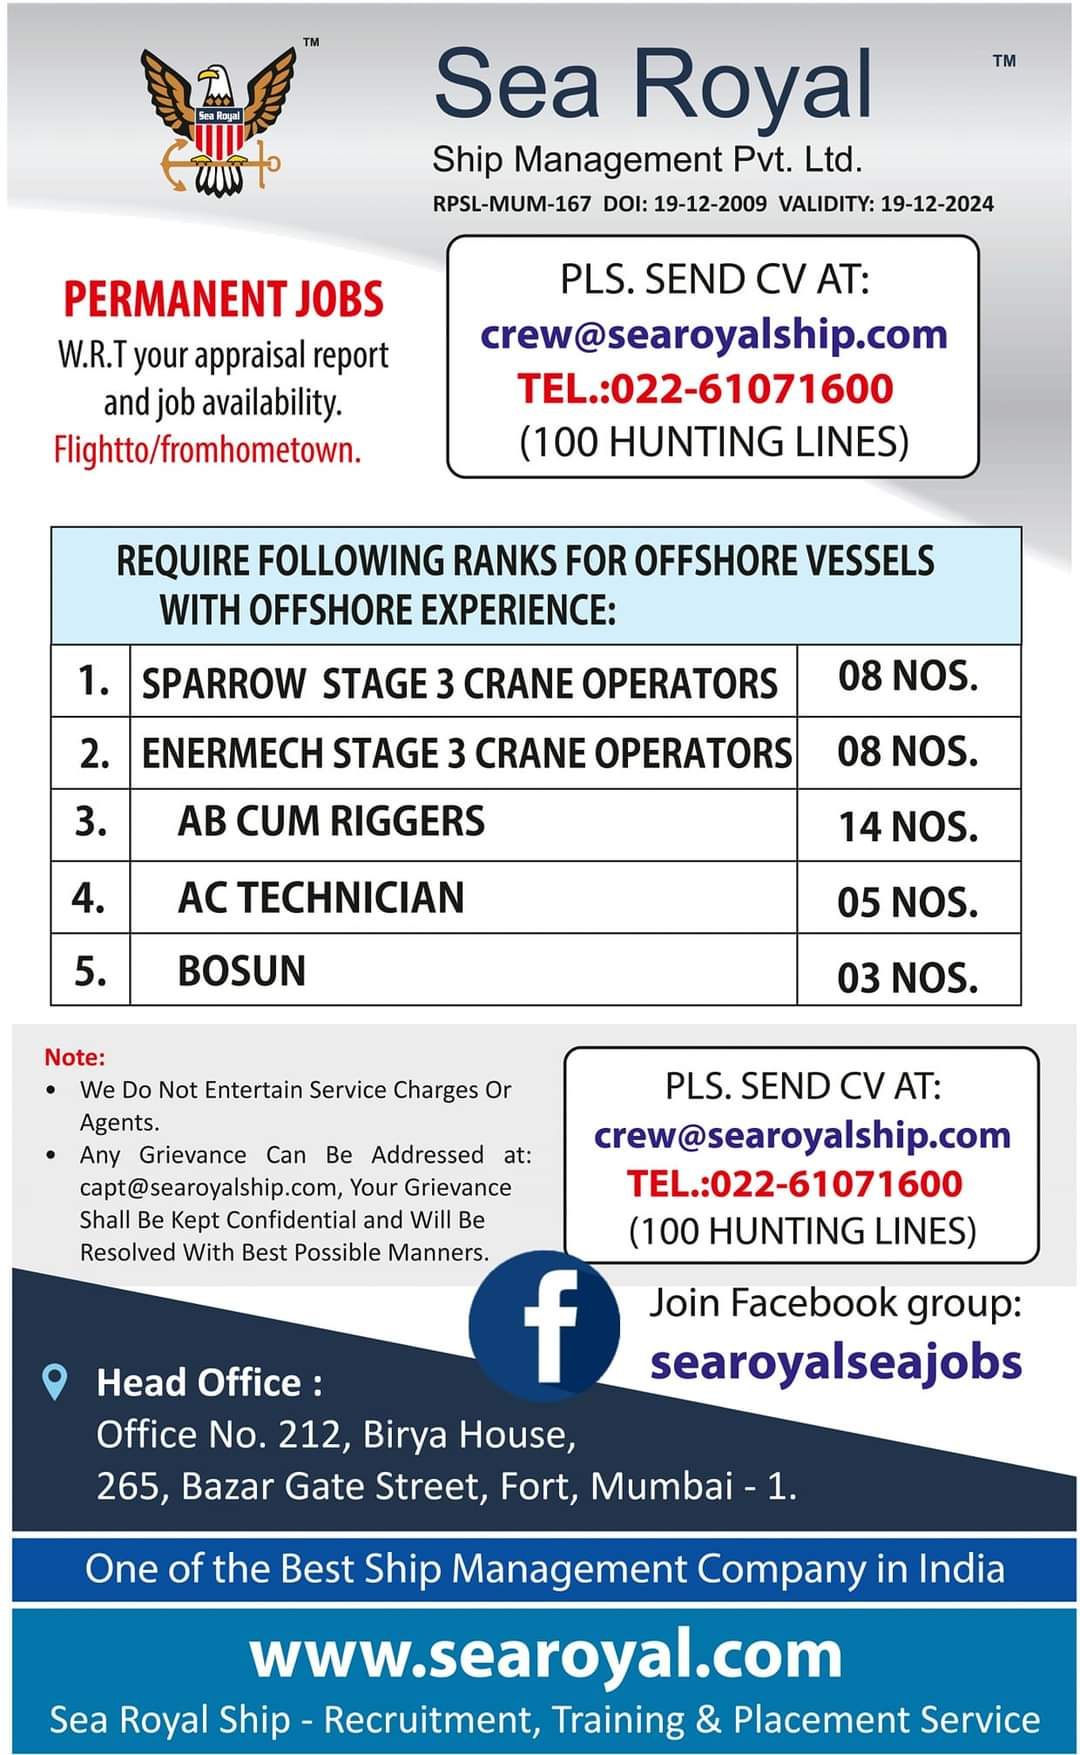 WALK- IN INTERVIEW IN MUMBAI FOR ONE OF THE SHIP MANAGEMENT COMPANY